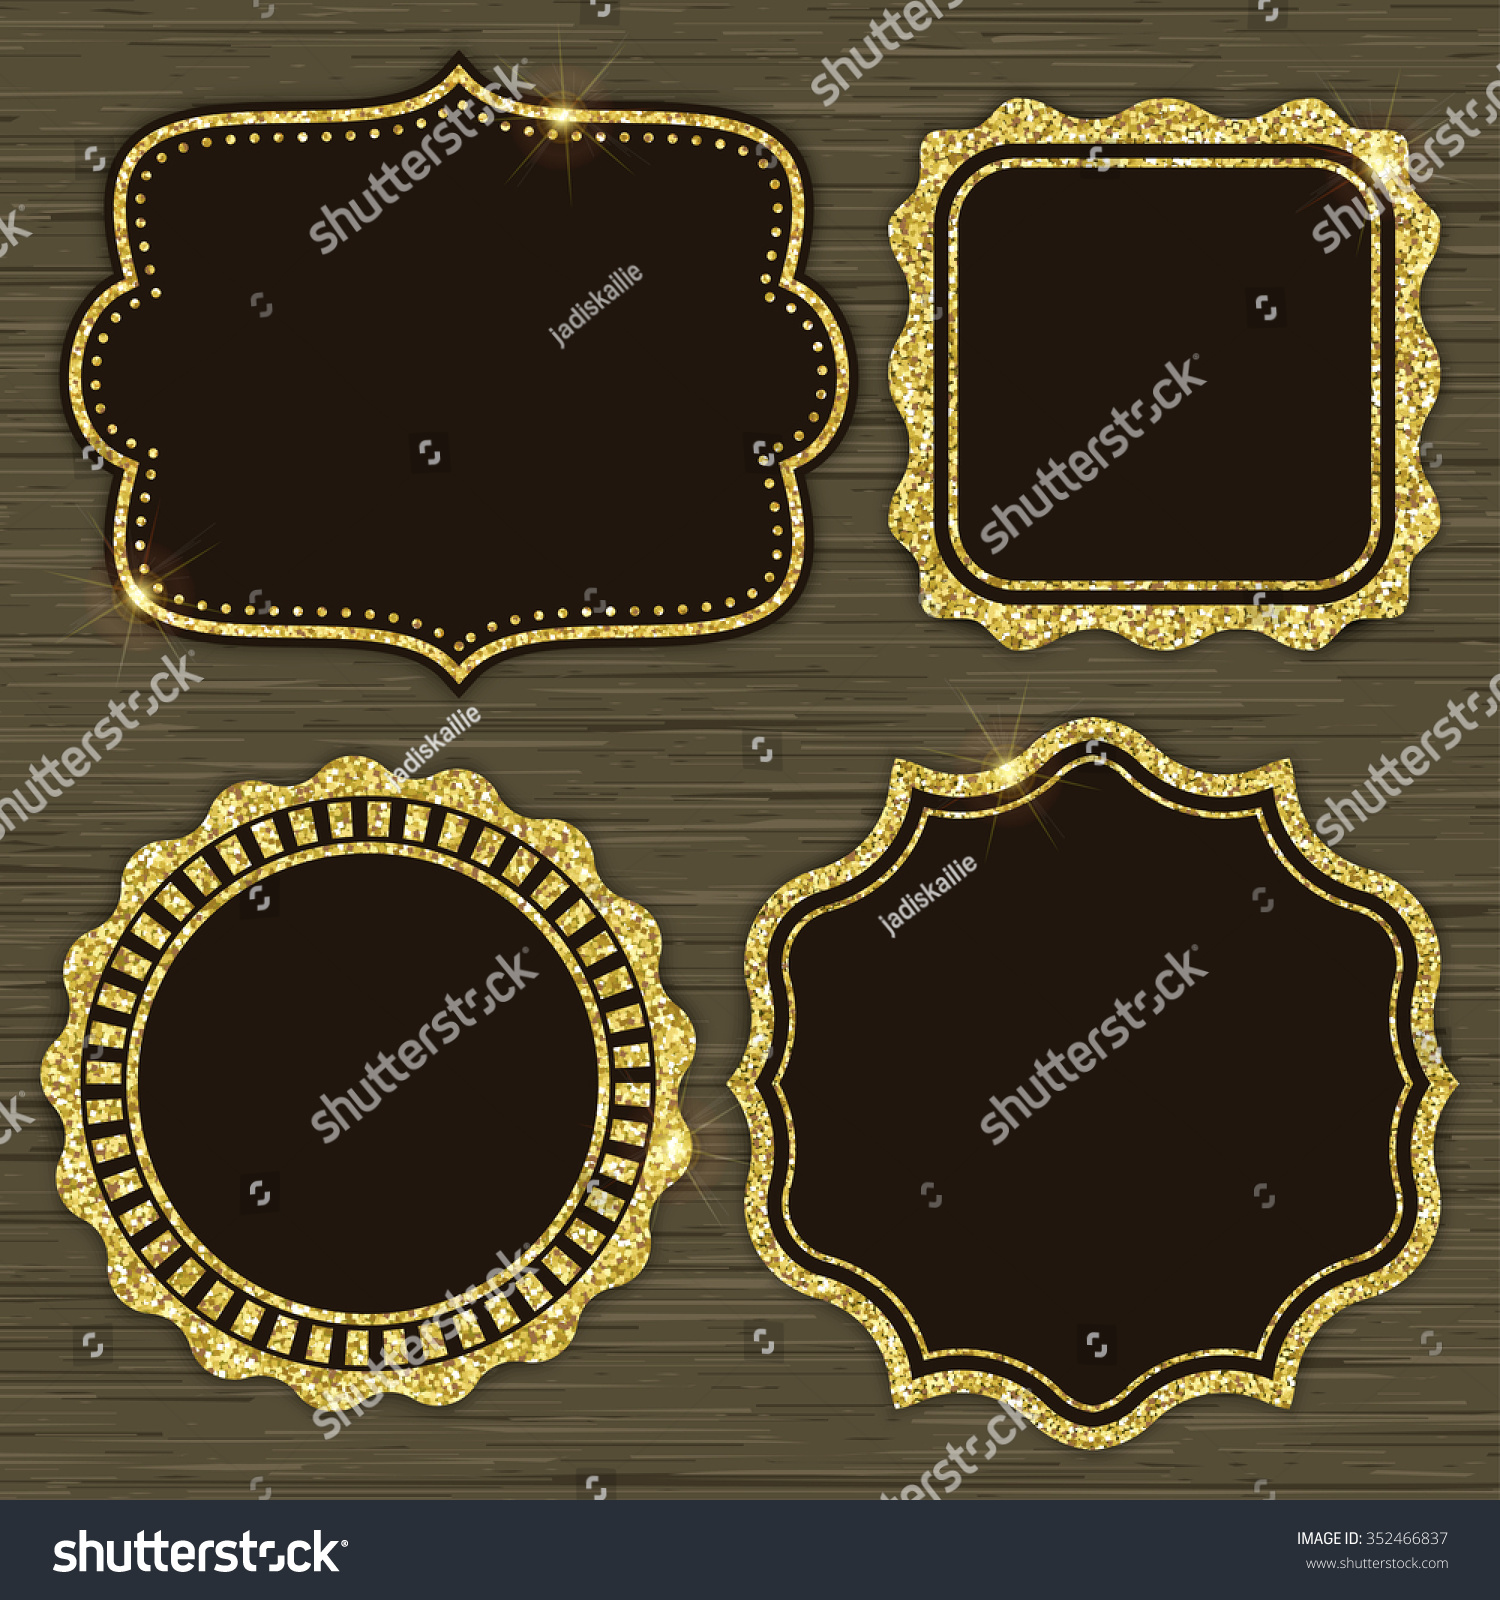 Set 4 gold glitter frames holiday stock vector 352466837 set of 4 gold glitter frames for holiday designs or invitations vector illustration stopboris Images